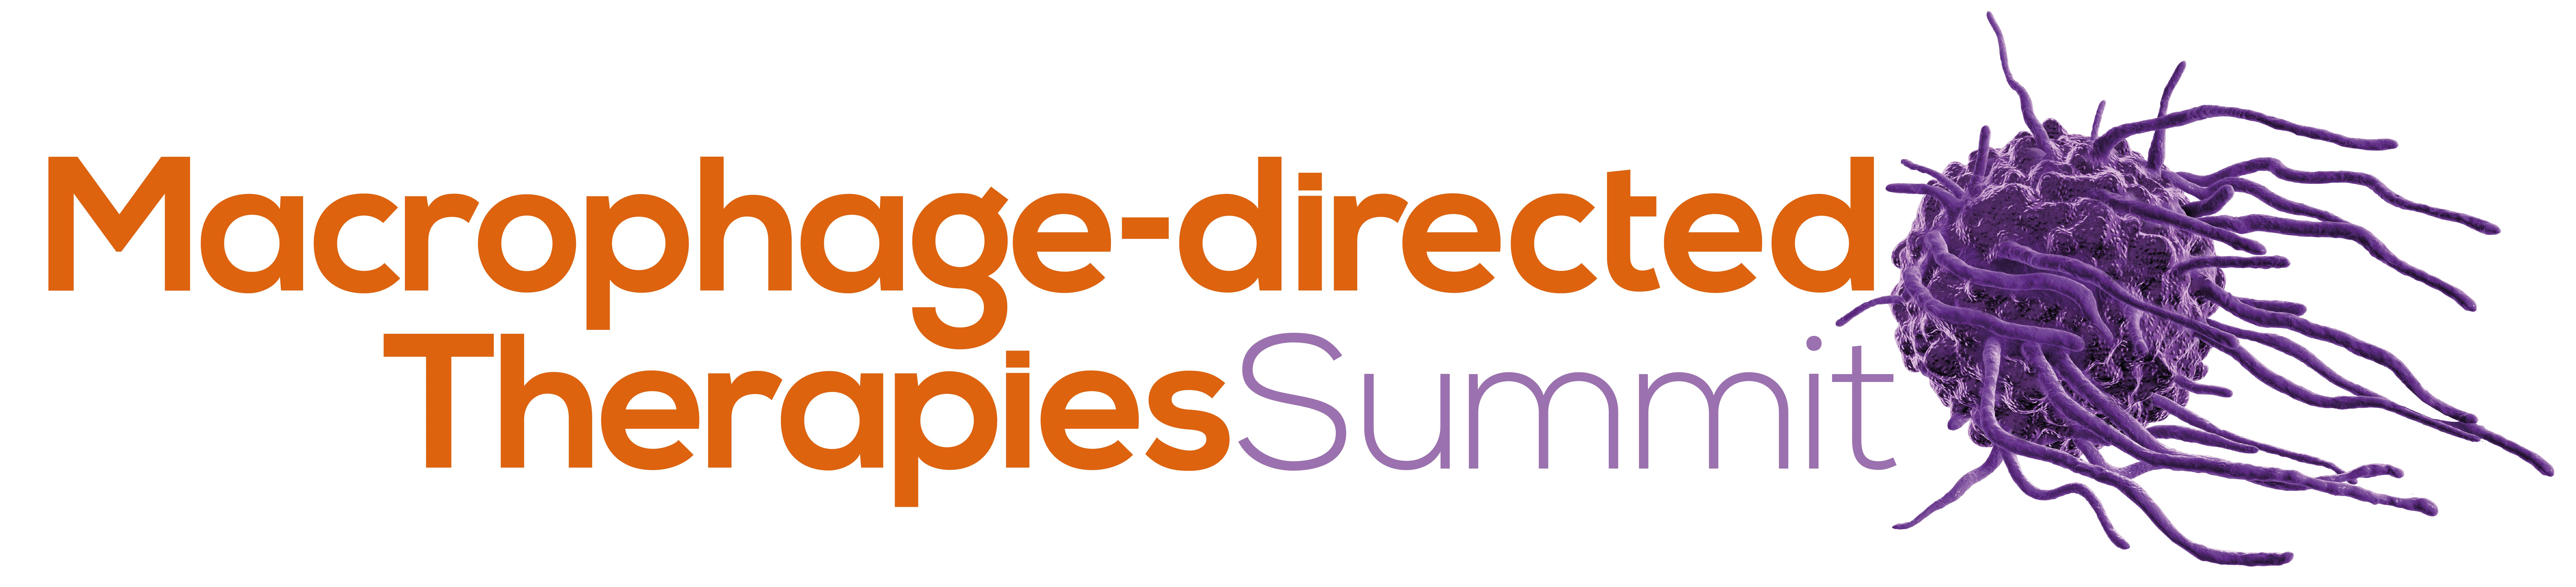 HW1914328 Macrophage-directed Therapies Summit logo-min